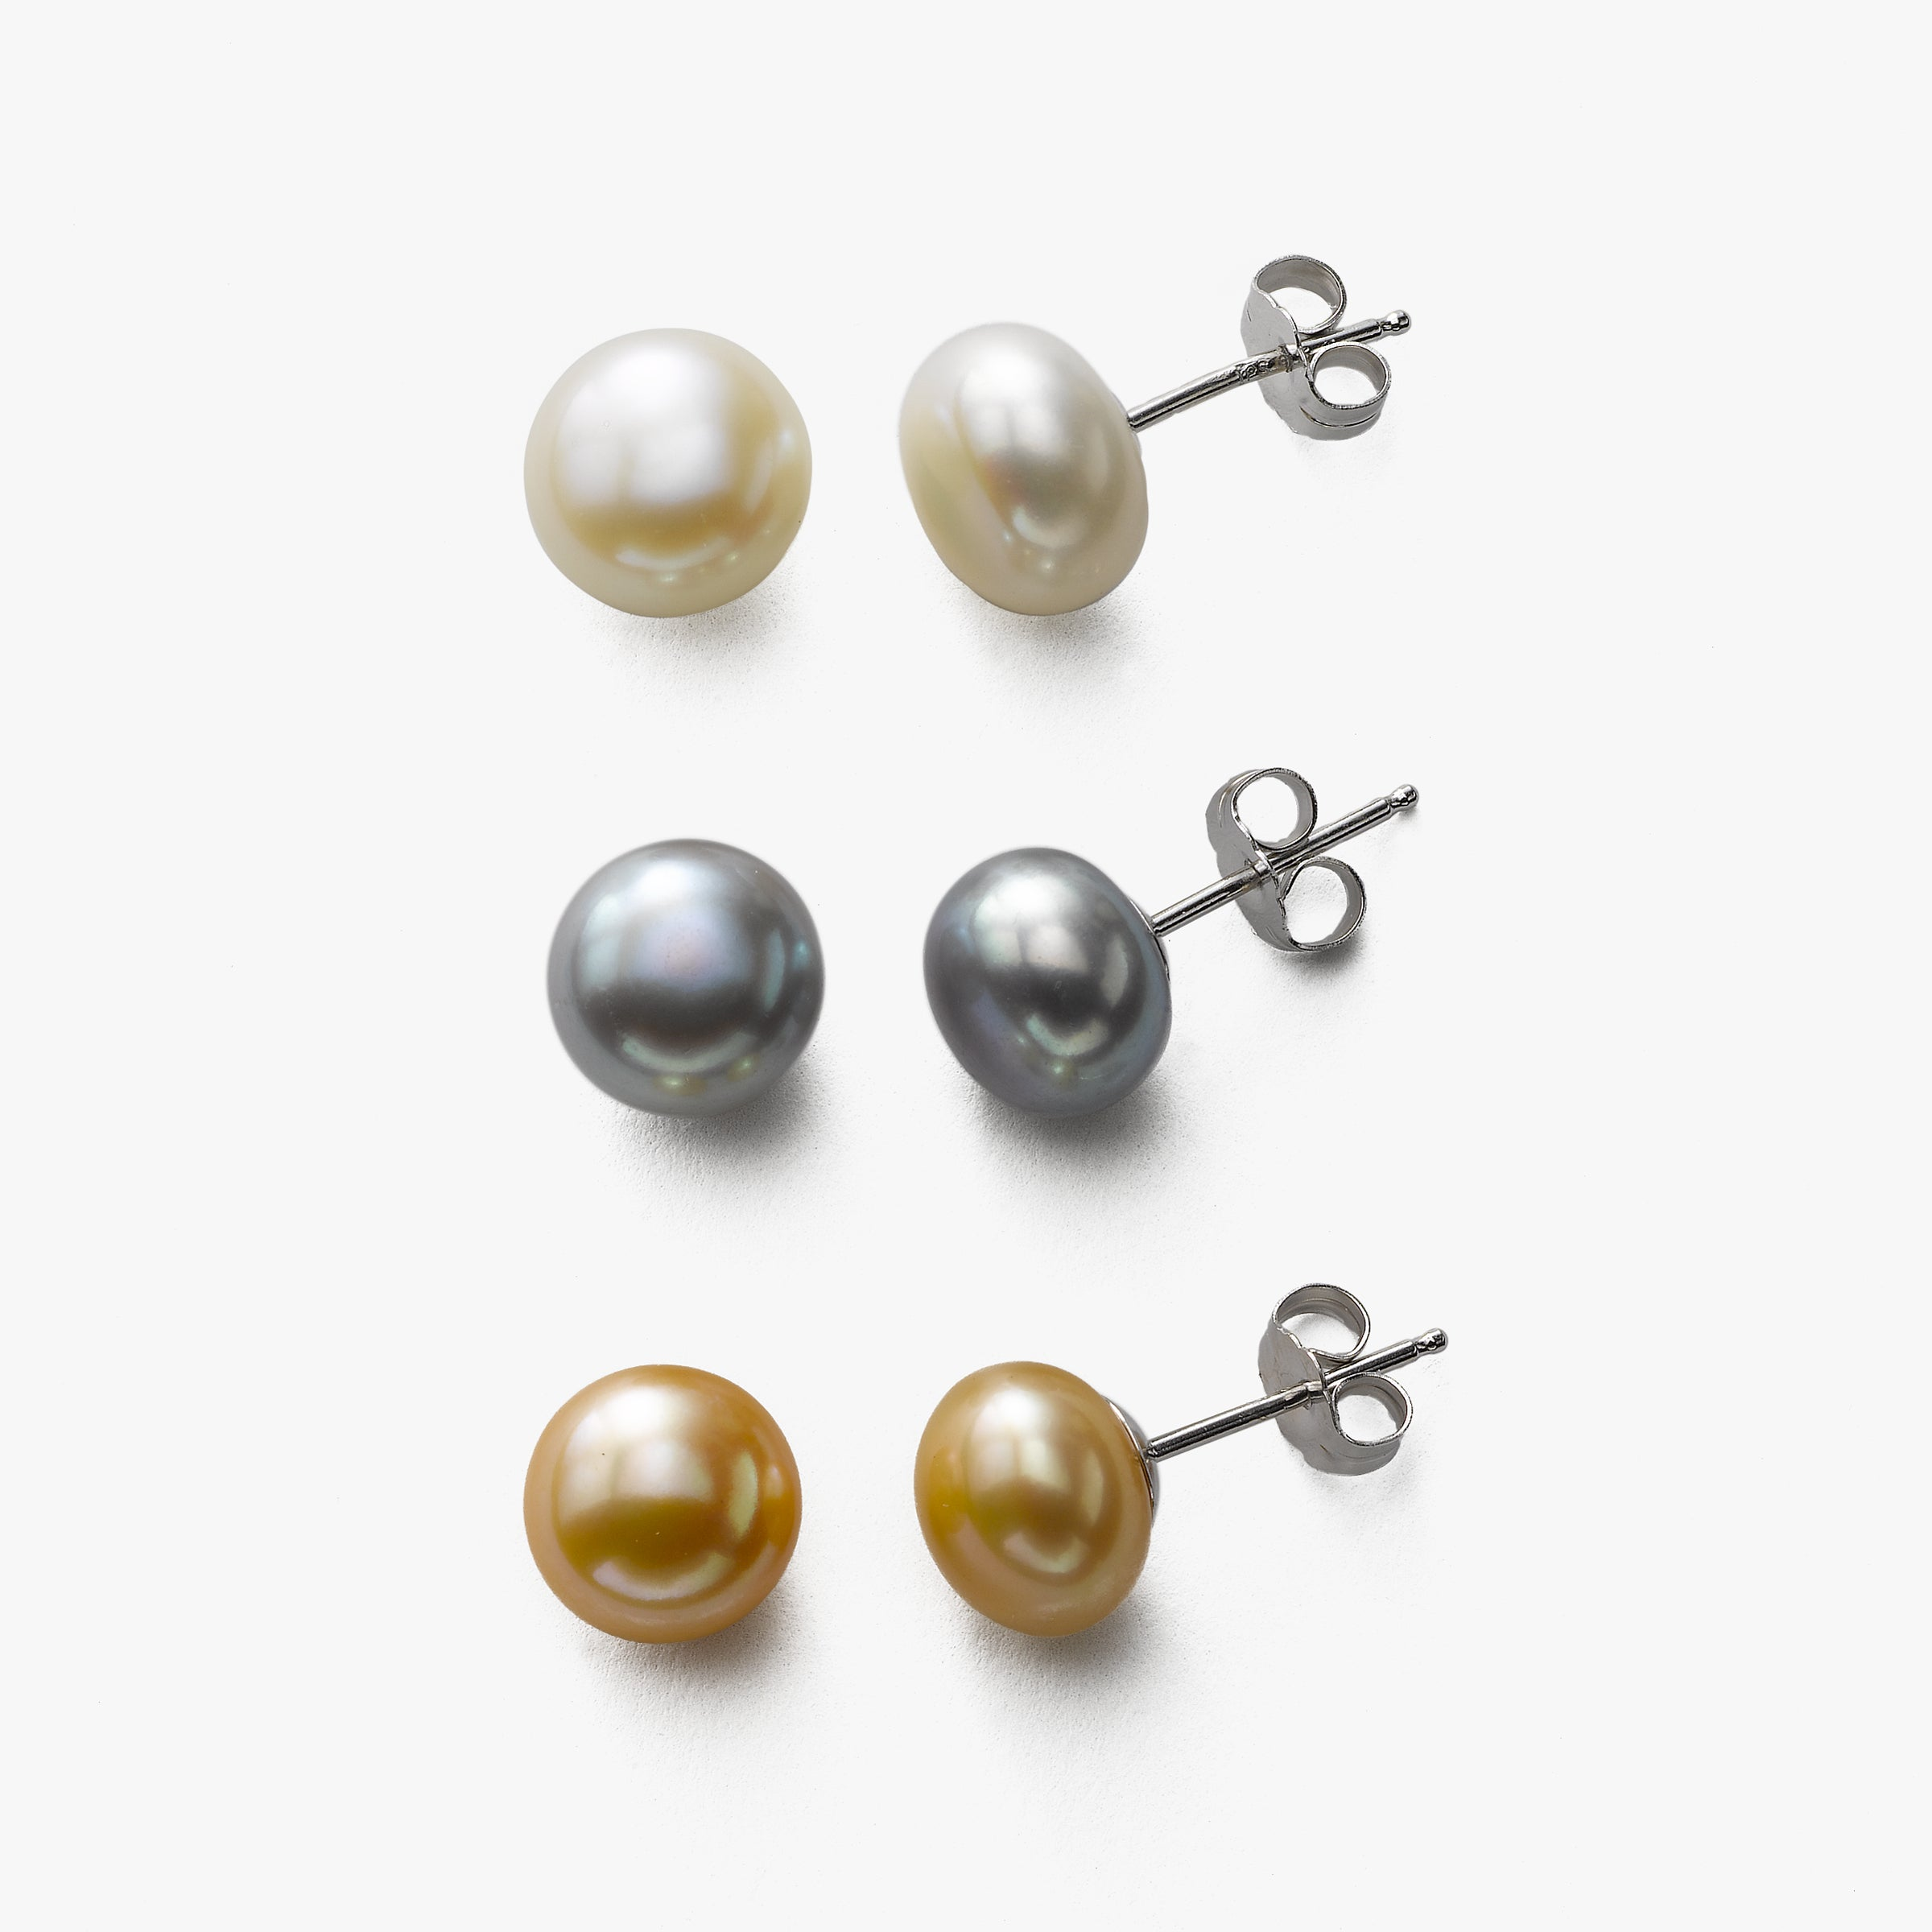 Set of Three Pairs Freshwater Pearl Stud Earrings, Sterling Silver